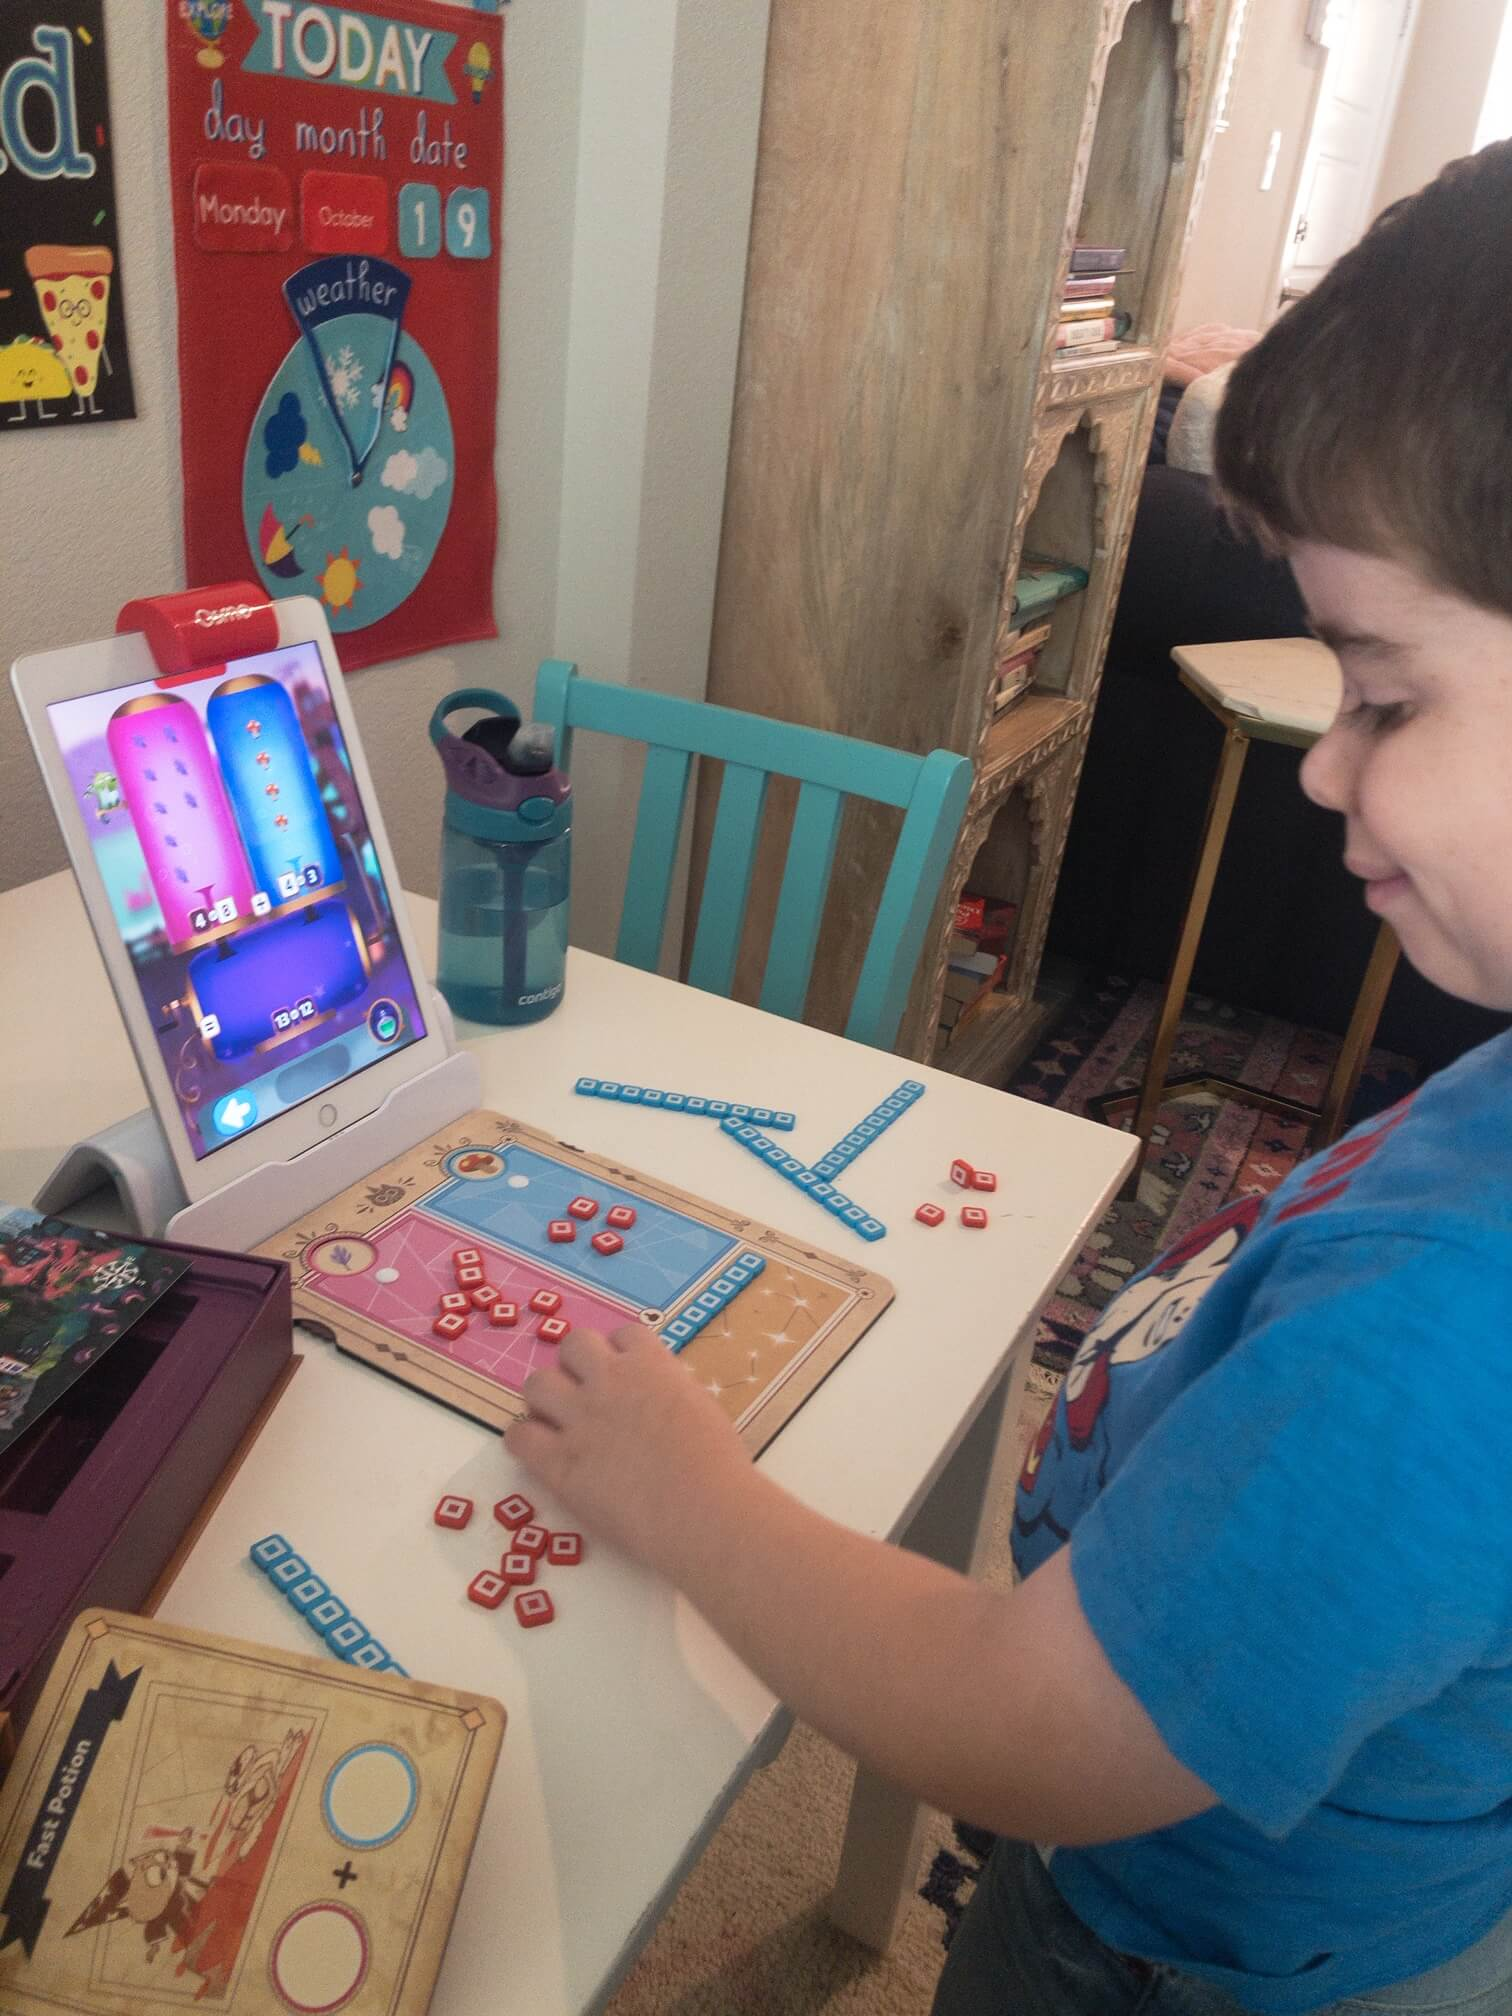 osmo math wizard